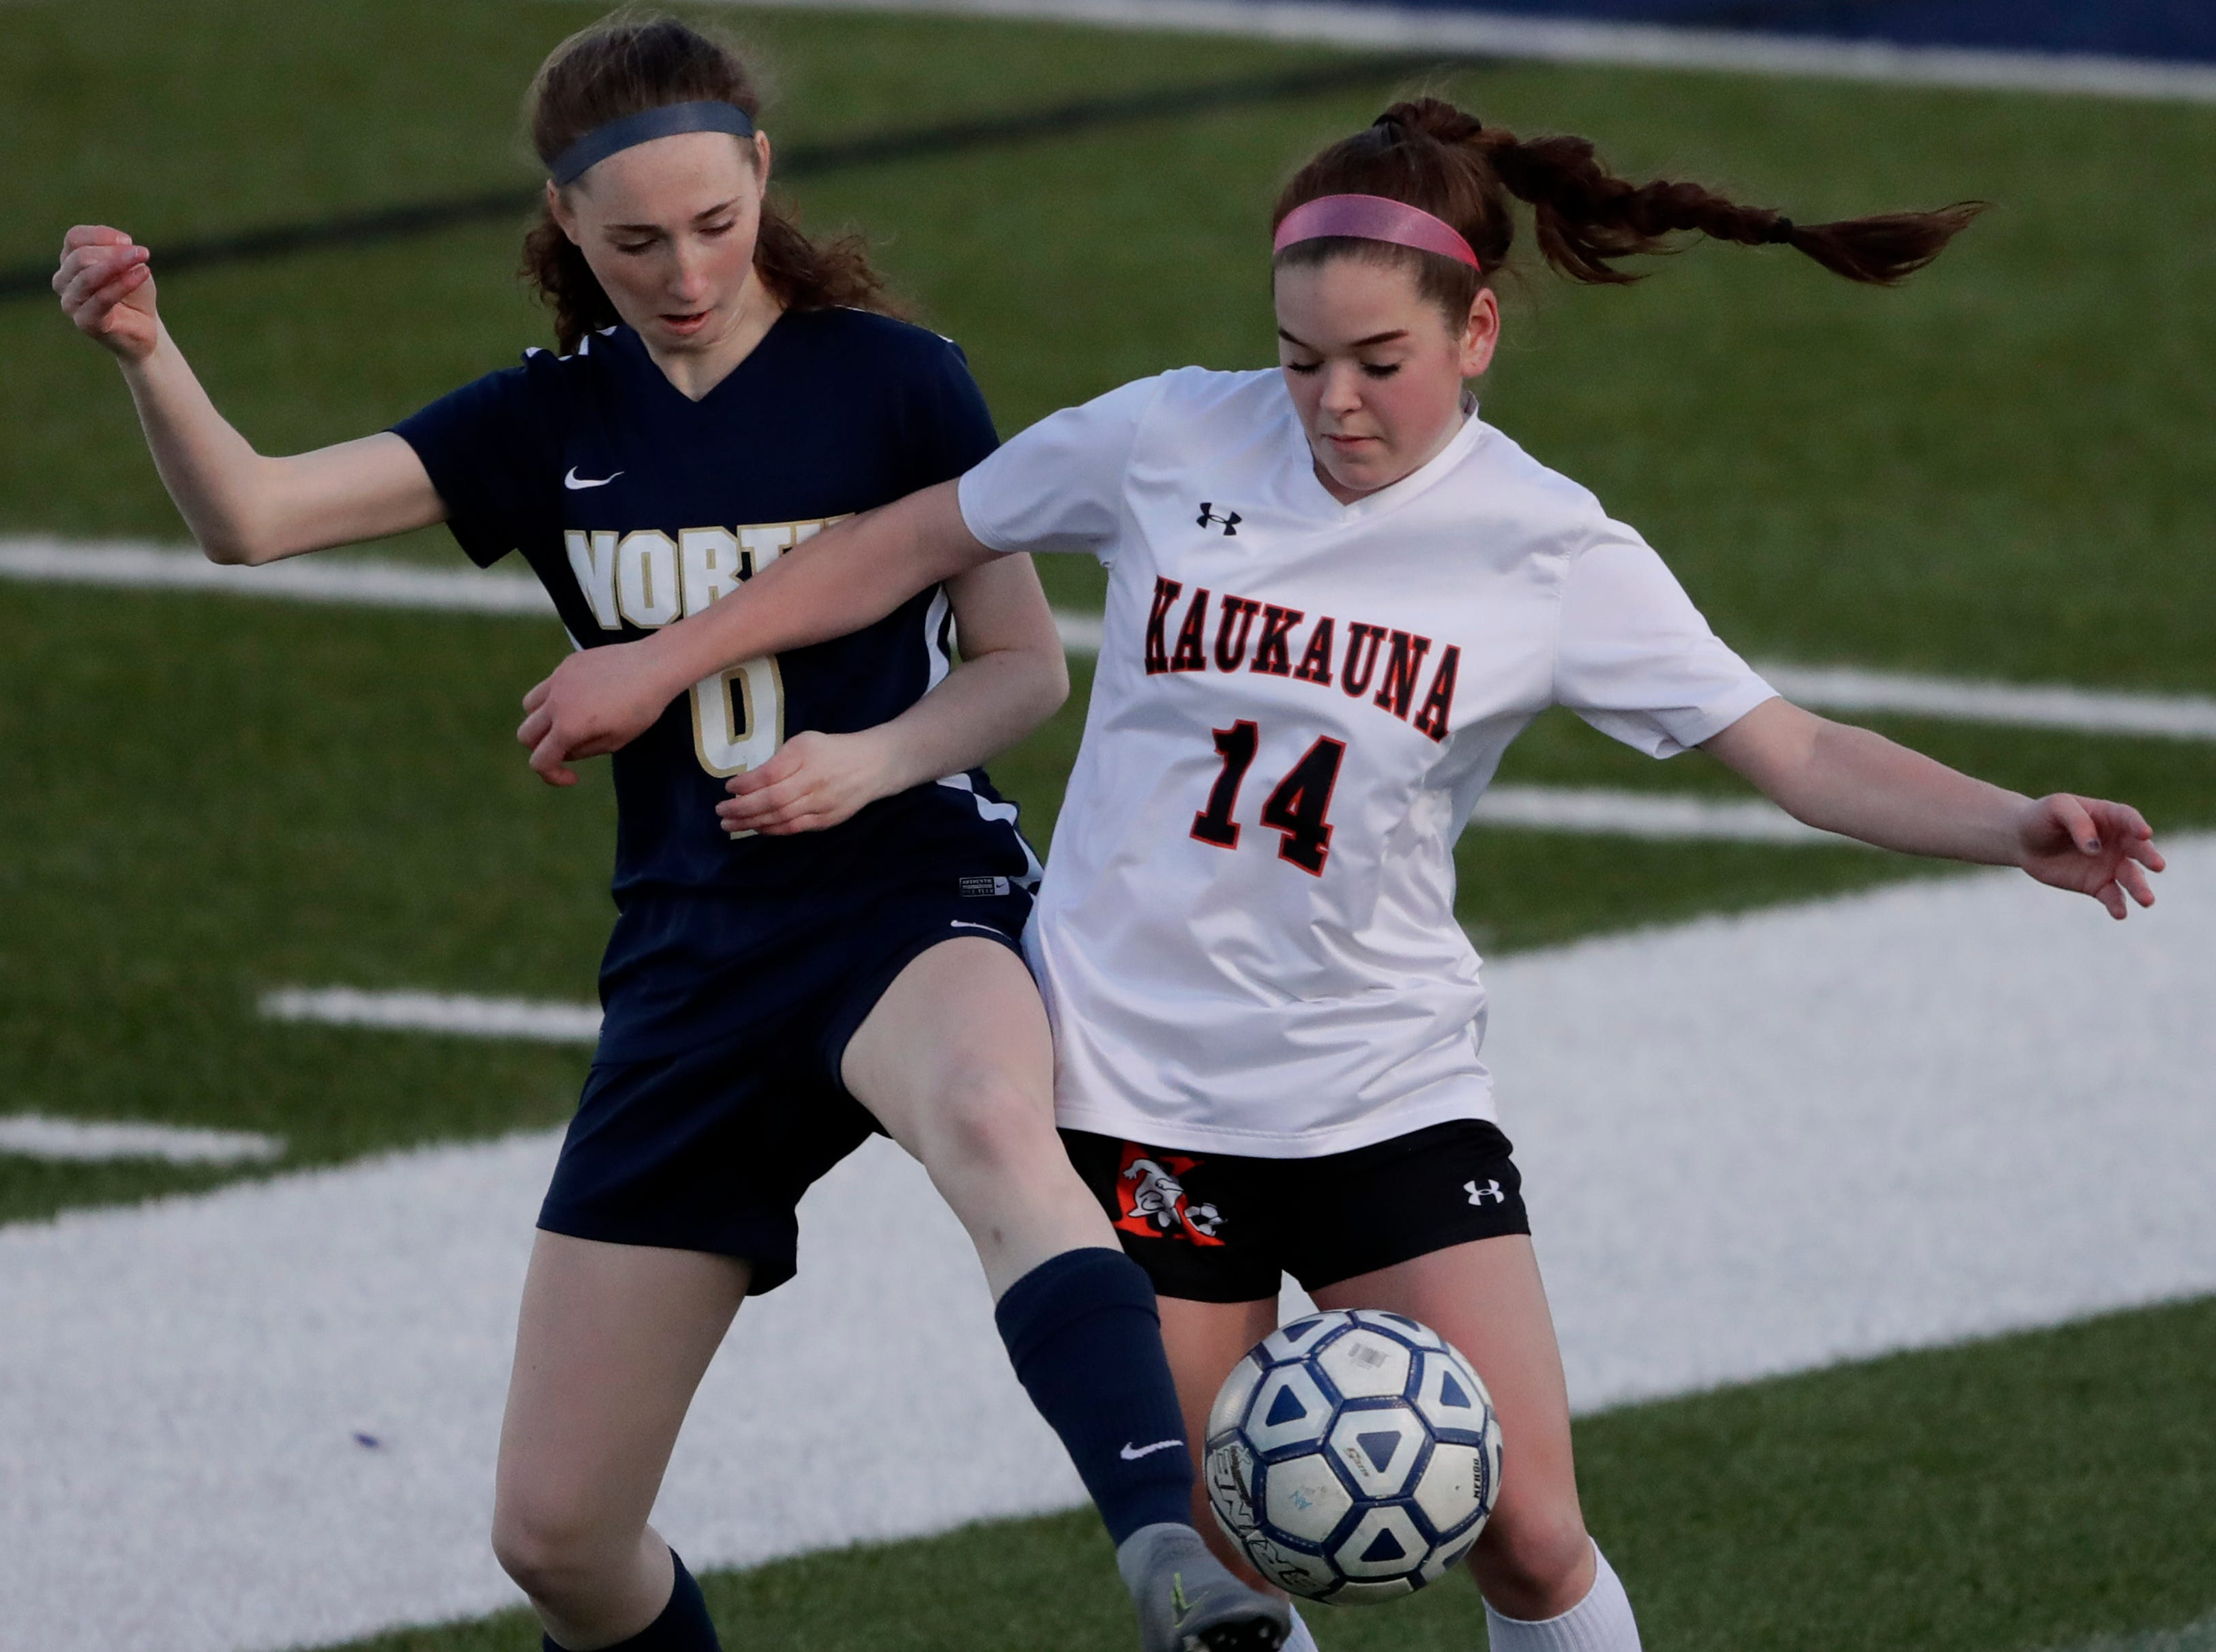 Appleton North High School's Carsen Desens (9) defends against Kaukauna High School's Hanna Brouch (14) during their girls soccer game Tuesday, April 23, 2019, in Appleton, Wis. 